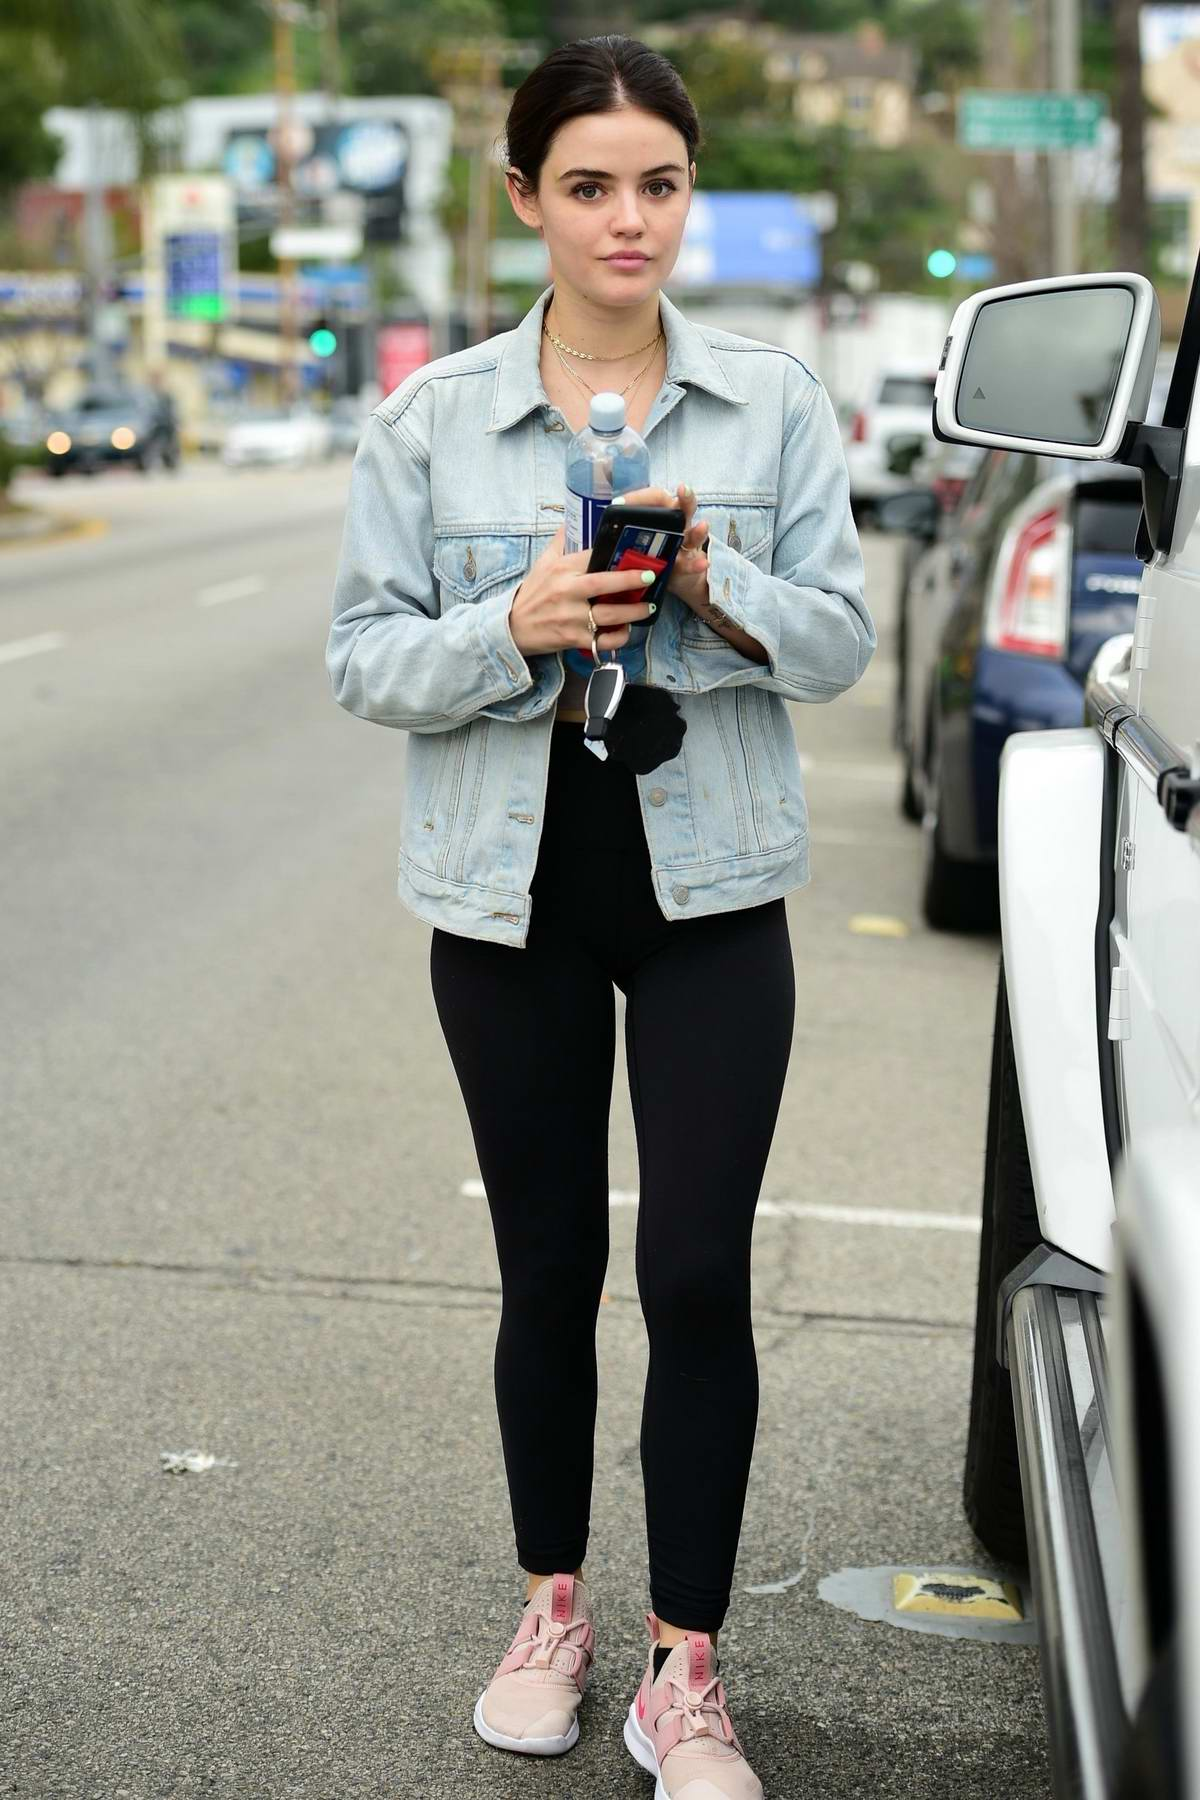 8543528b81d6a Lucy Hale leaves after a workout session wearing a denim jacket and leggings  in Los Angeles